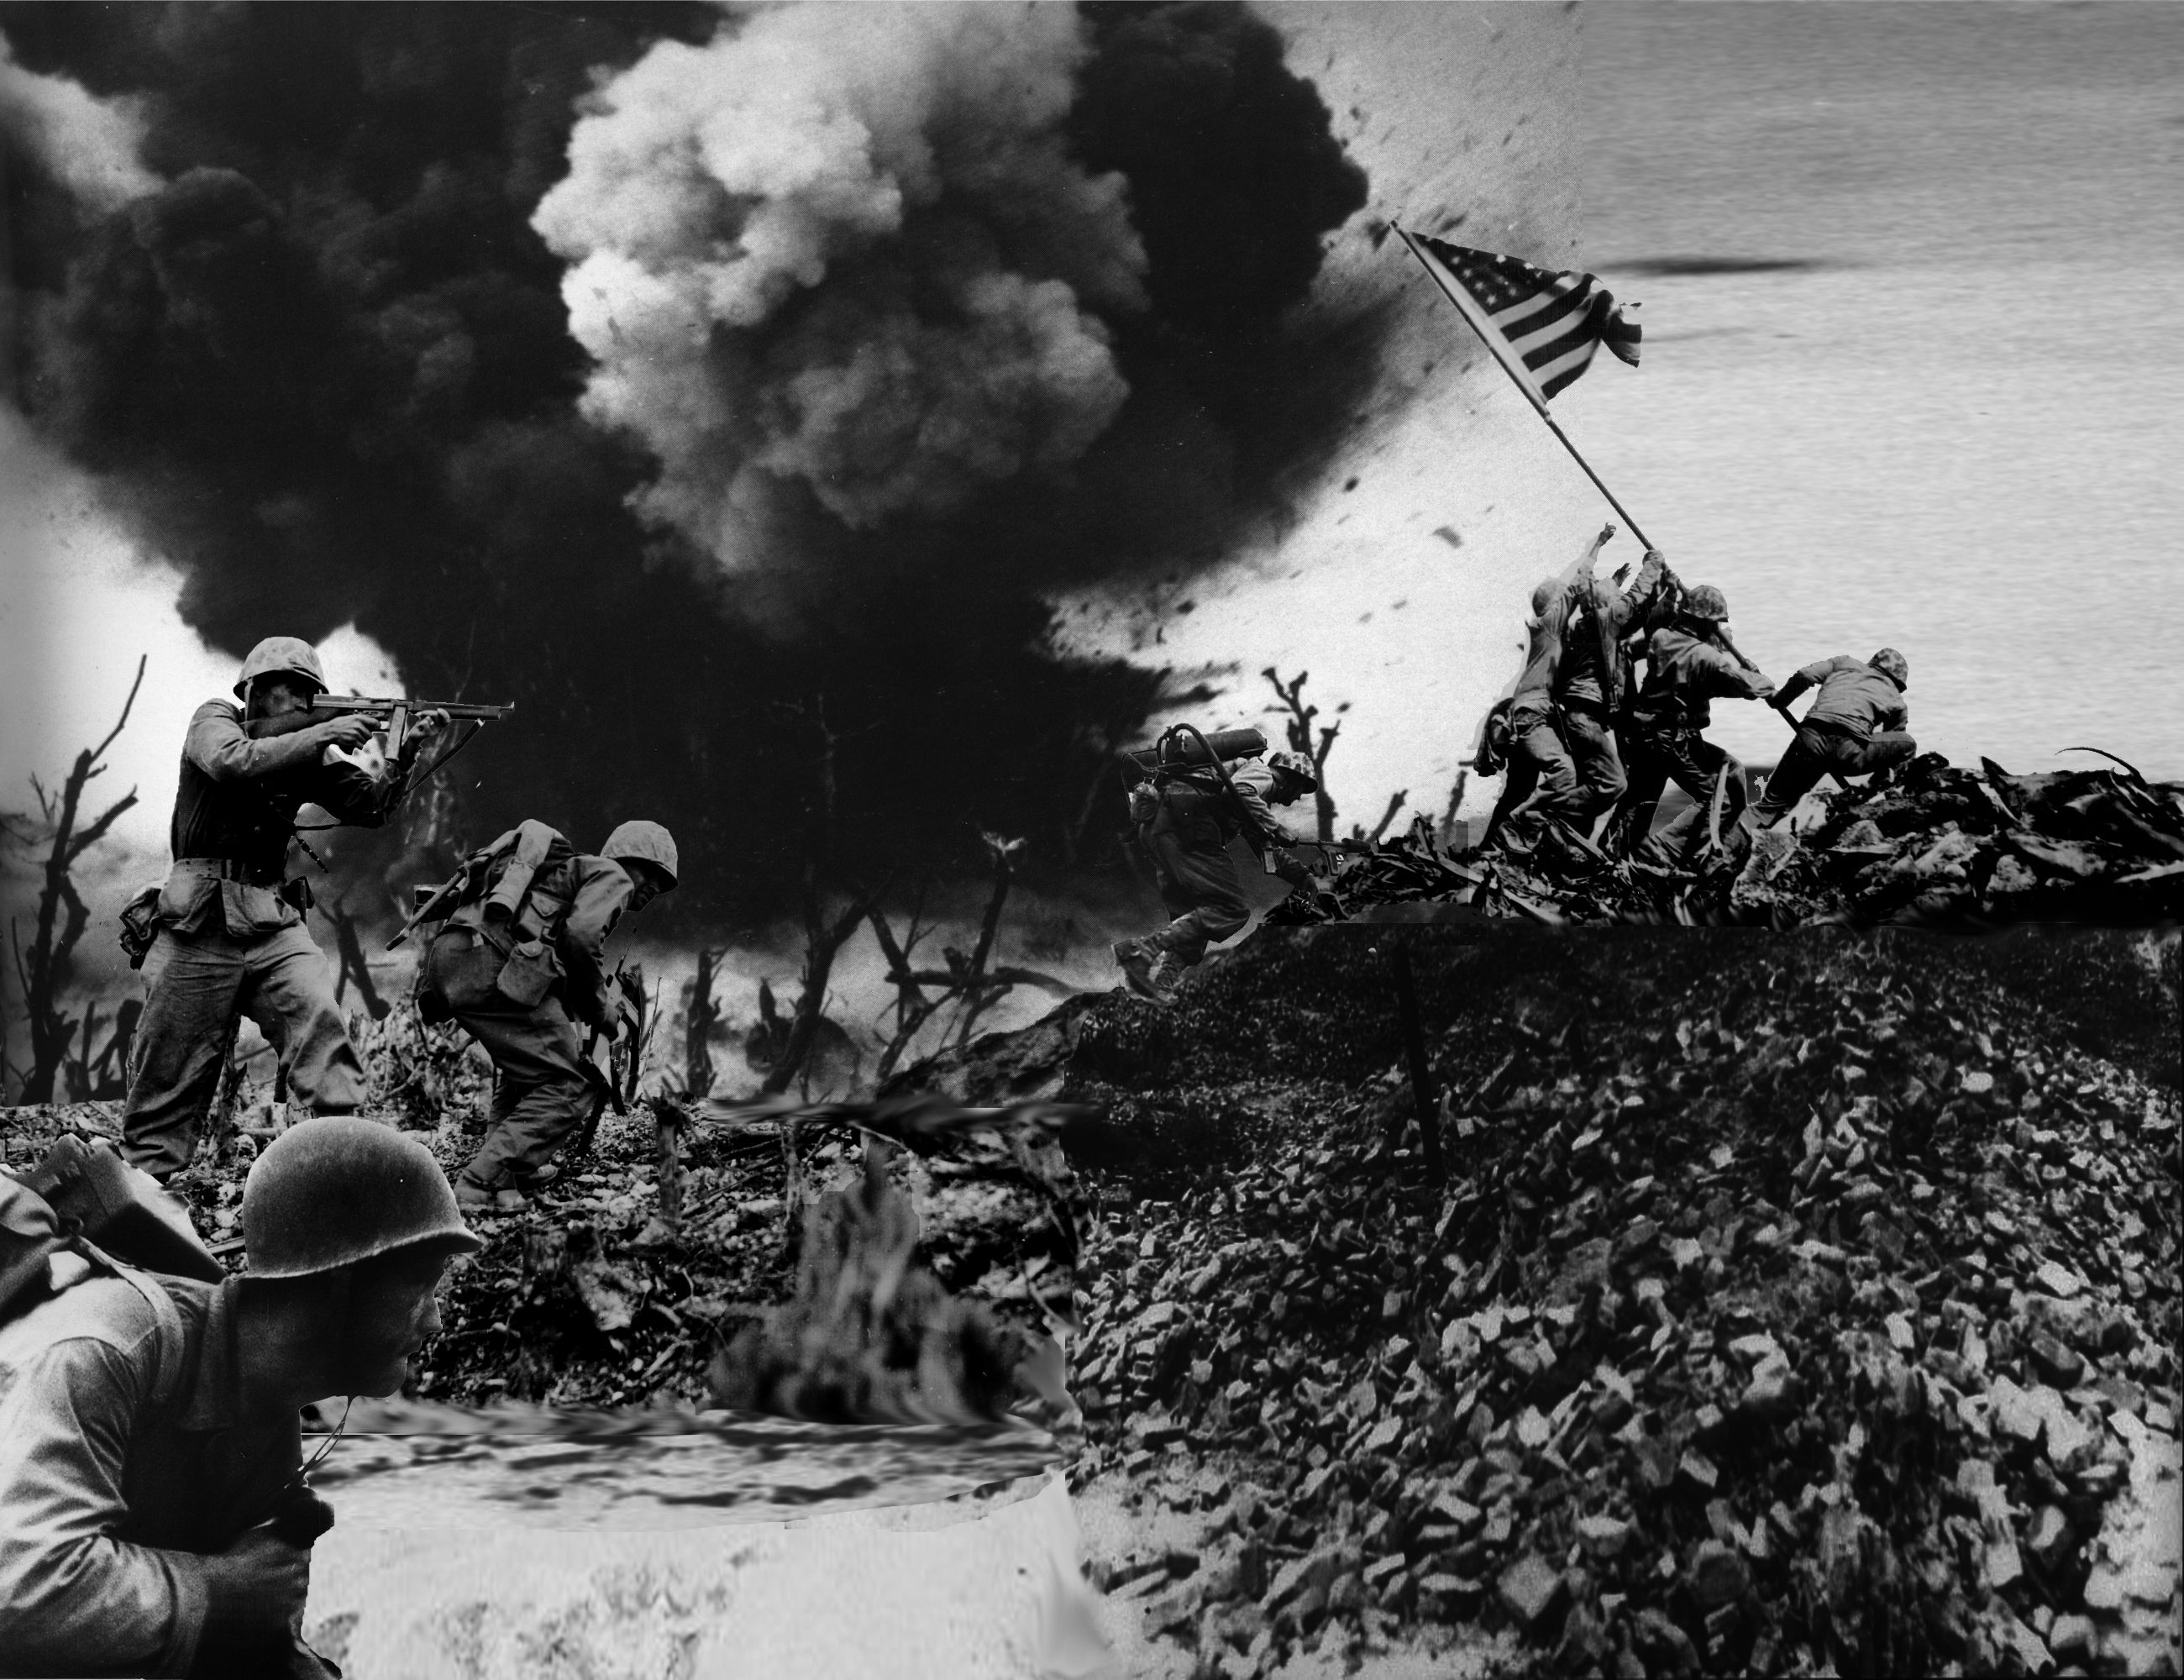 the battle of iwo jima essay Thus, the reason why the battle of iwo jima was important is that it exposed and reinforced the fact that in order to end the war, the japanese would have to be defeated in a continual stream of island-hopping campaigns against a foe that would die before surrendering.